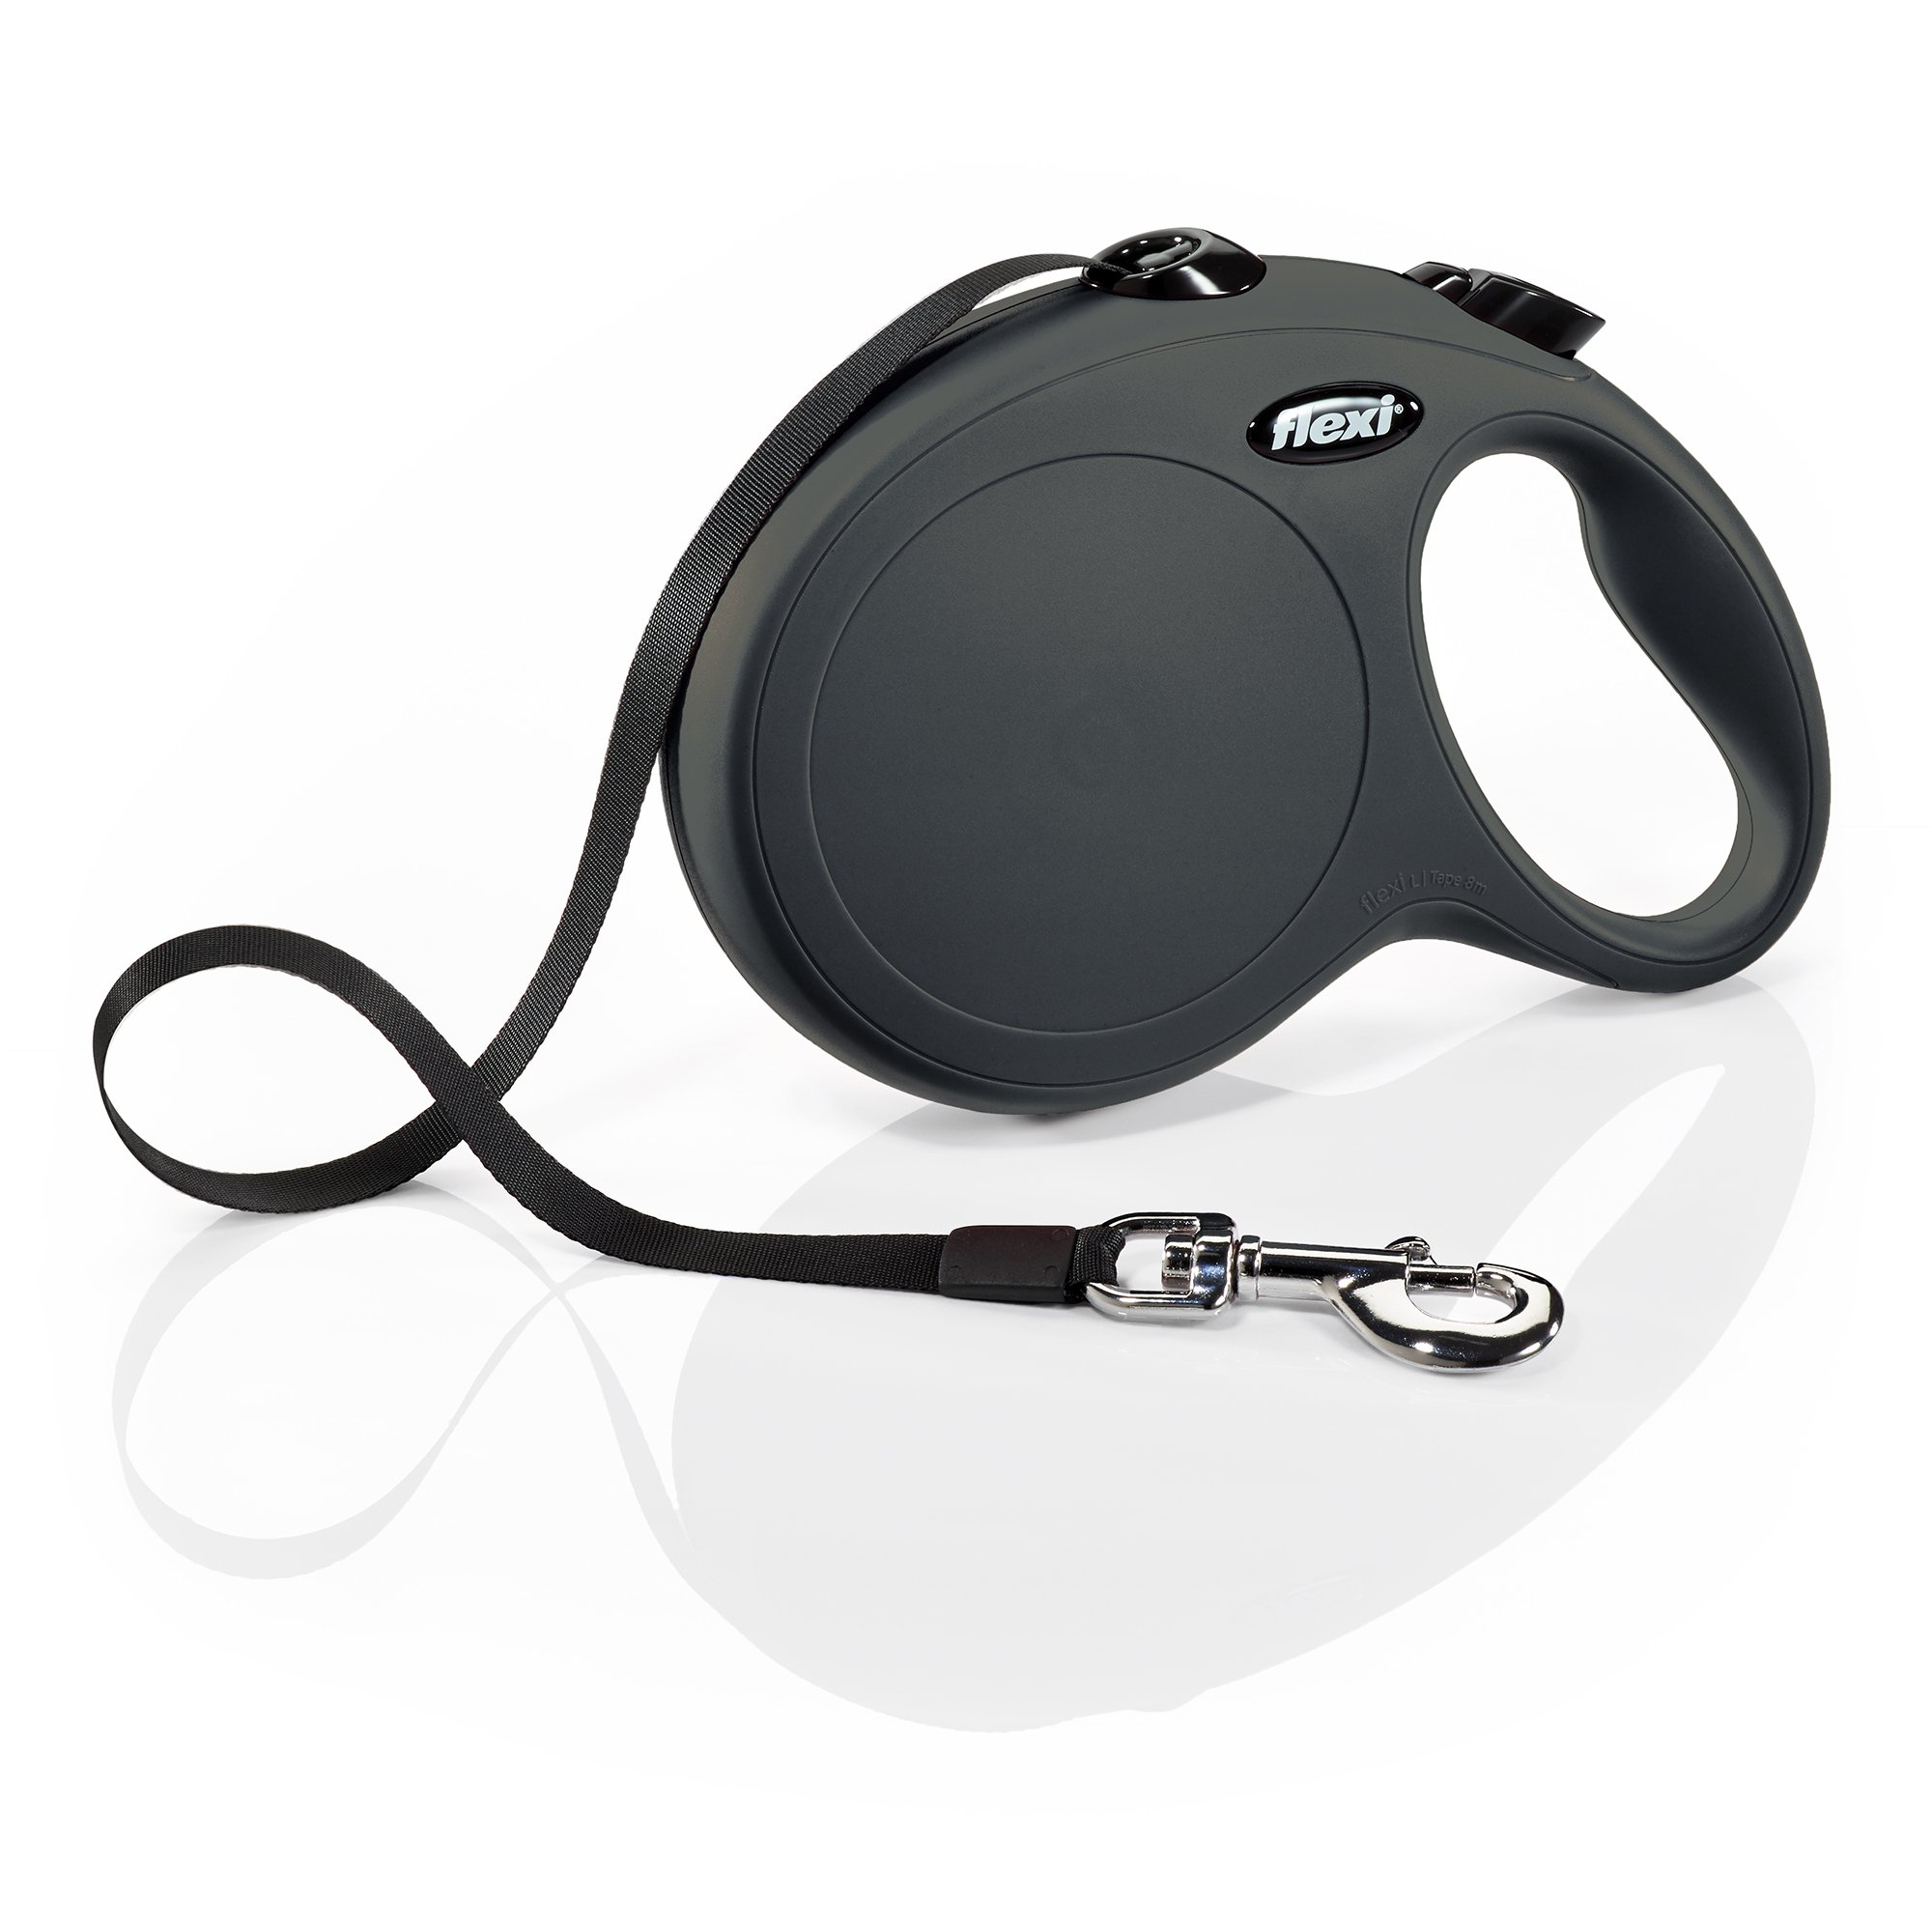 Flexi New Classic Retractable Dog Leash, Tape, Black, Large/26', For Dogs up to 110 lbs by Flexi